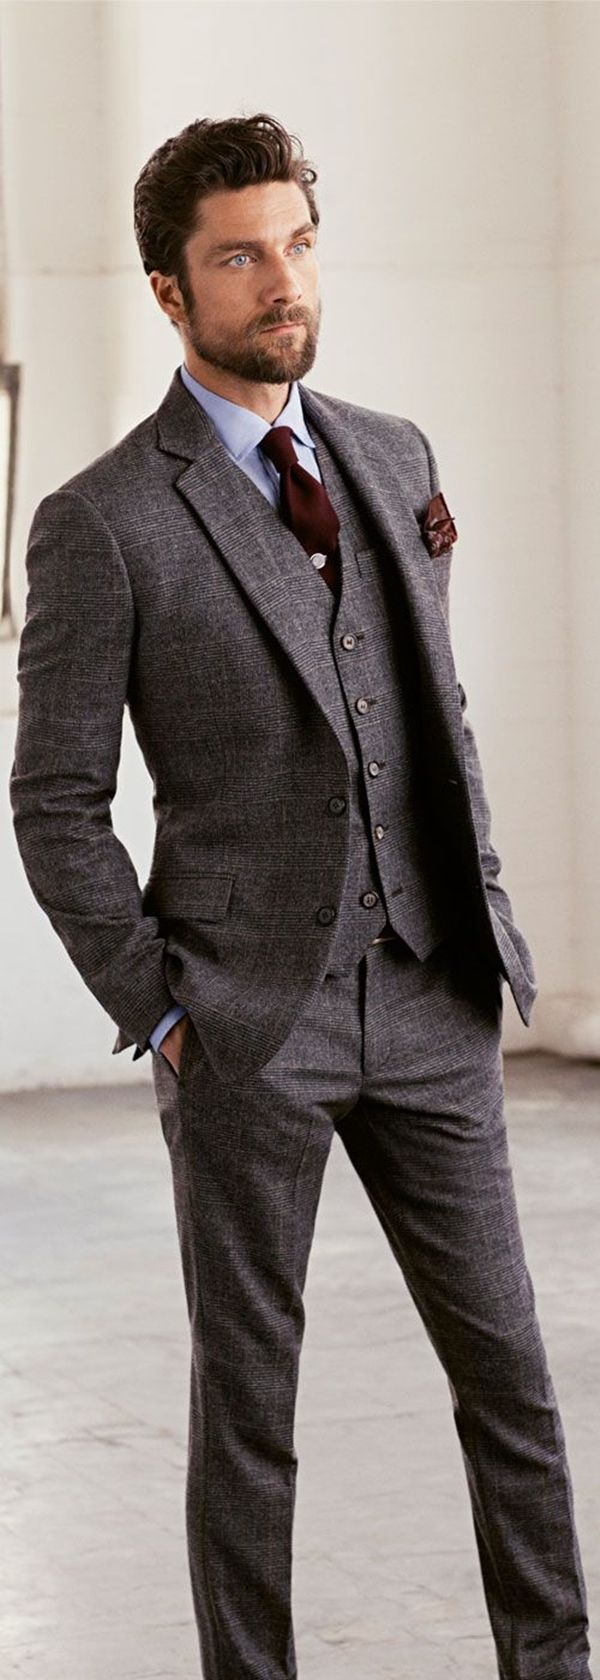 Best Tailored Checkered Suits Men Wedding Suits Men Grey Wedding Suits Men Grey Suit Wedding